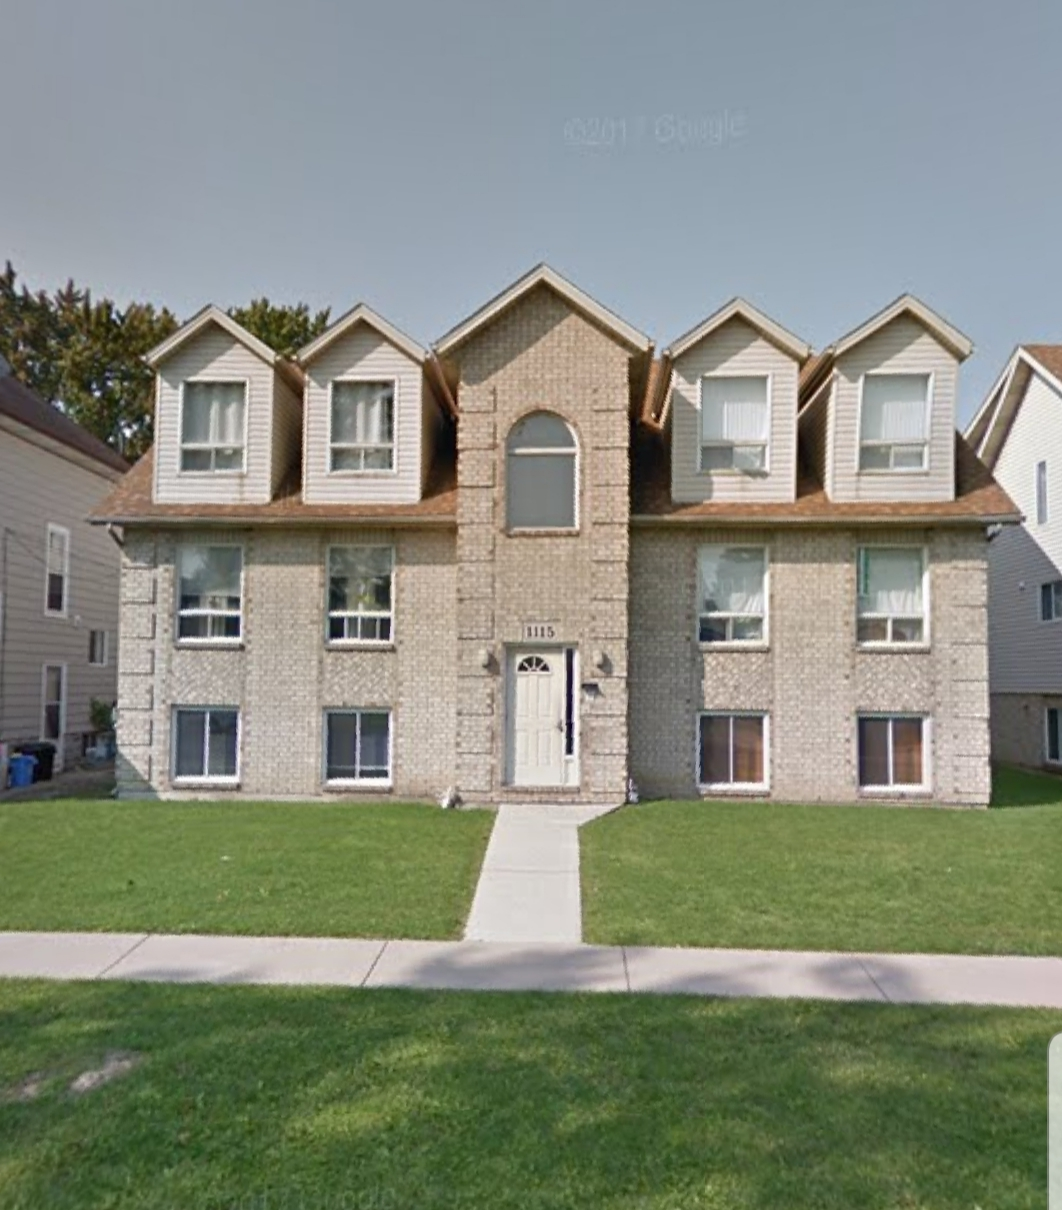 UPDATED UPPER WITH 2 BEDROOMS CLOSE TO DOWNTOWN WINDSOR